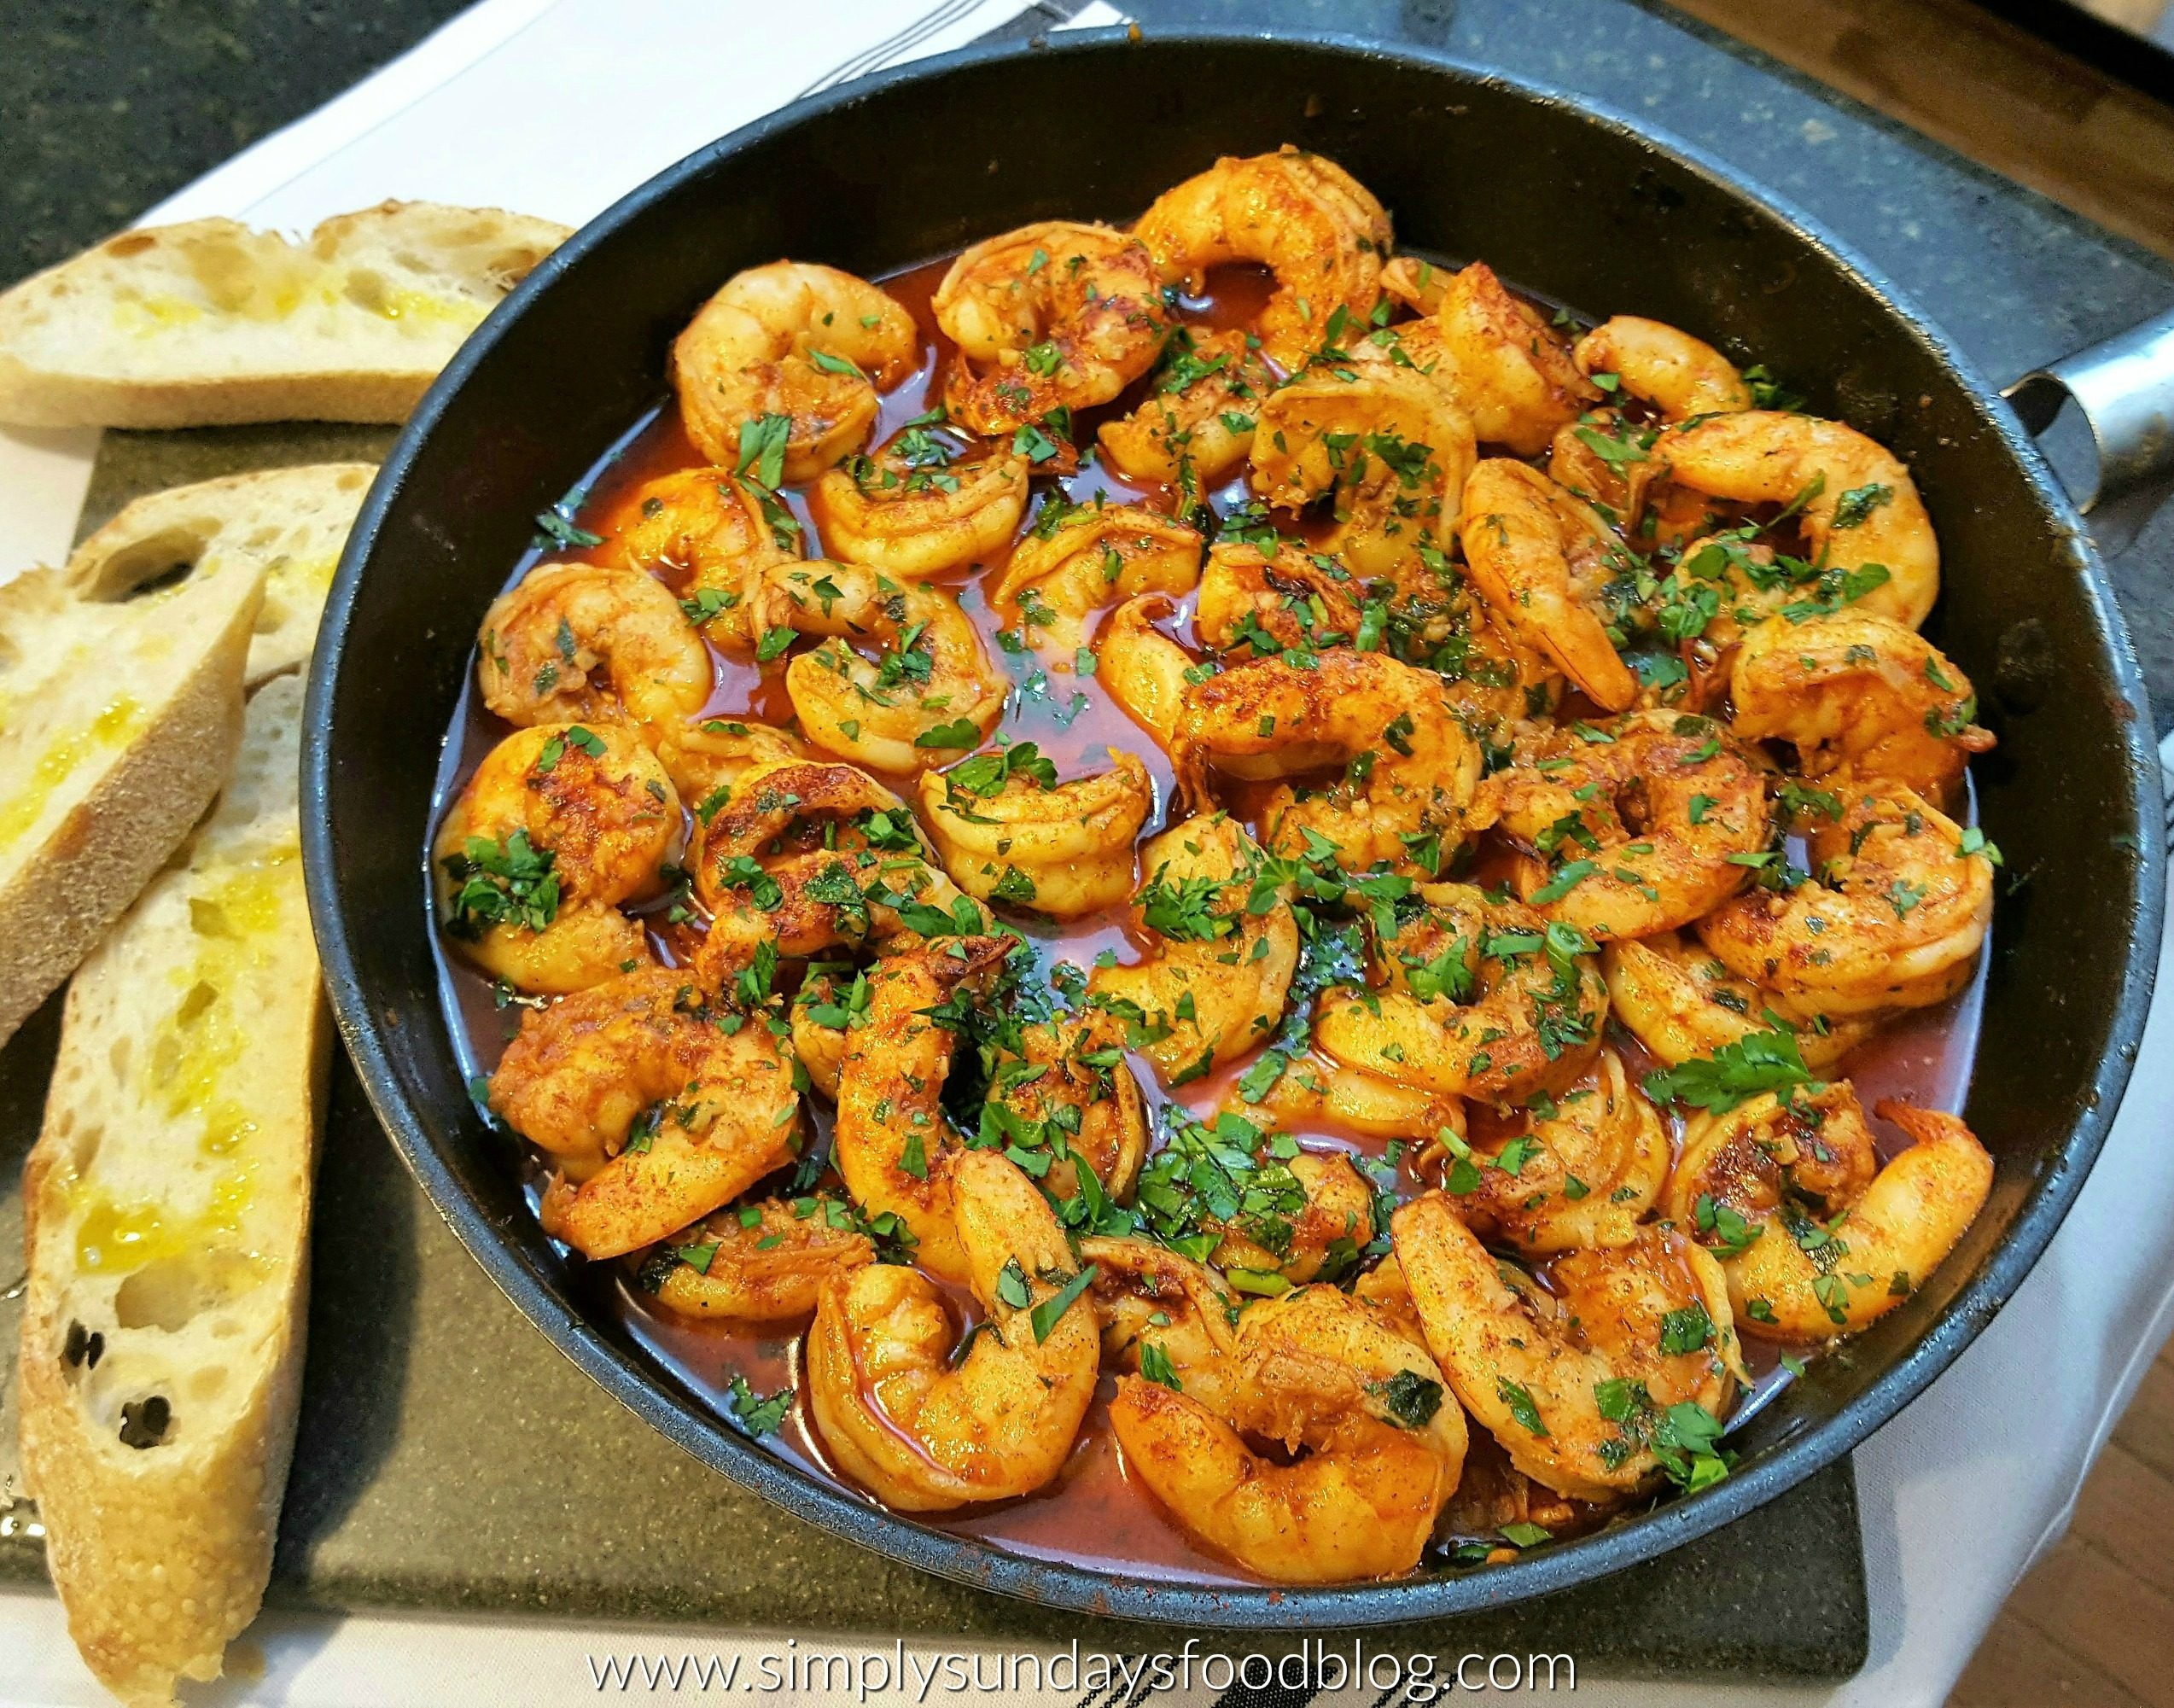 A pan filled with large shrimp coated in a red garlic sauce sprinkled with fresh green parsley with crusty garlic bread on the side drizzled with olive oil